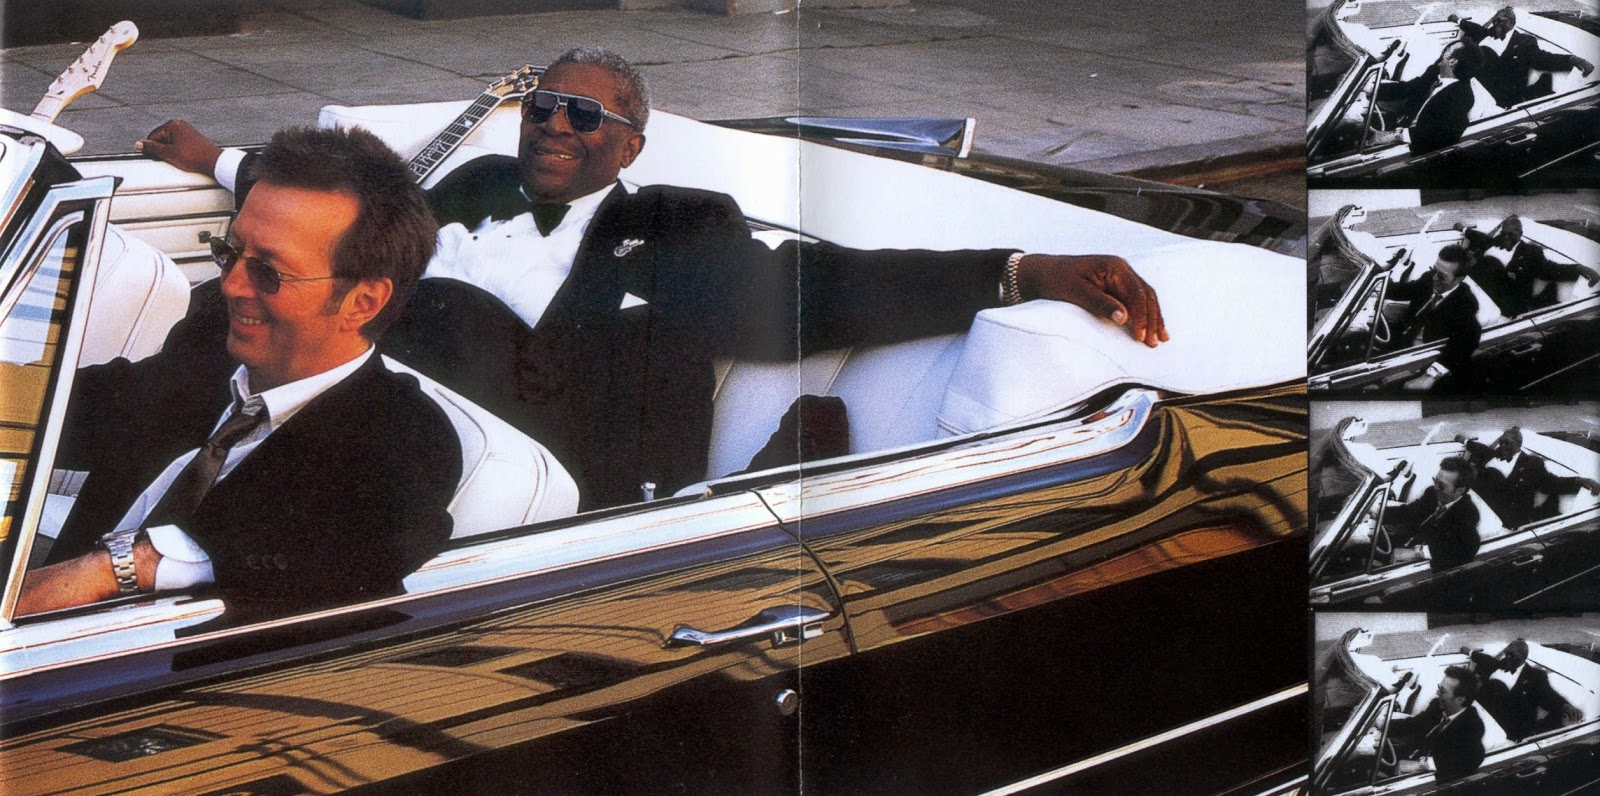 the life and music of b b king 15052015 the music world lost one of its greatest musicians thursday when bb king, the pioneering blues guitarist and singer, died.